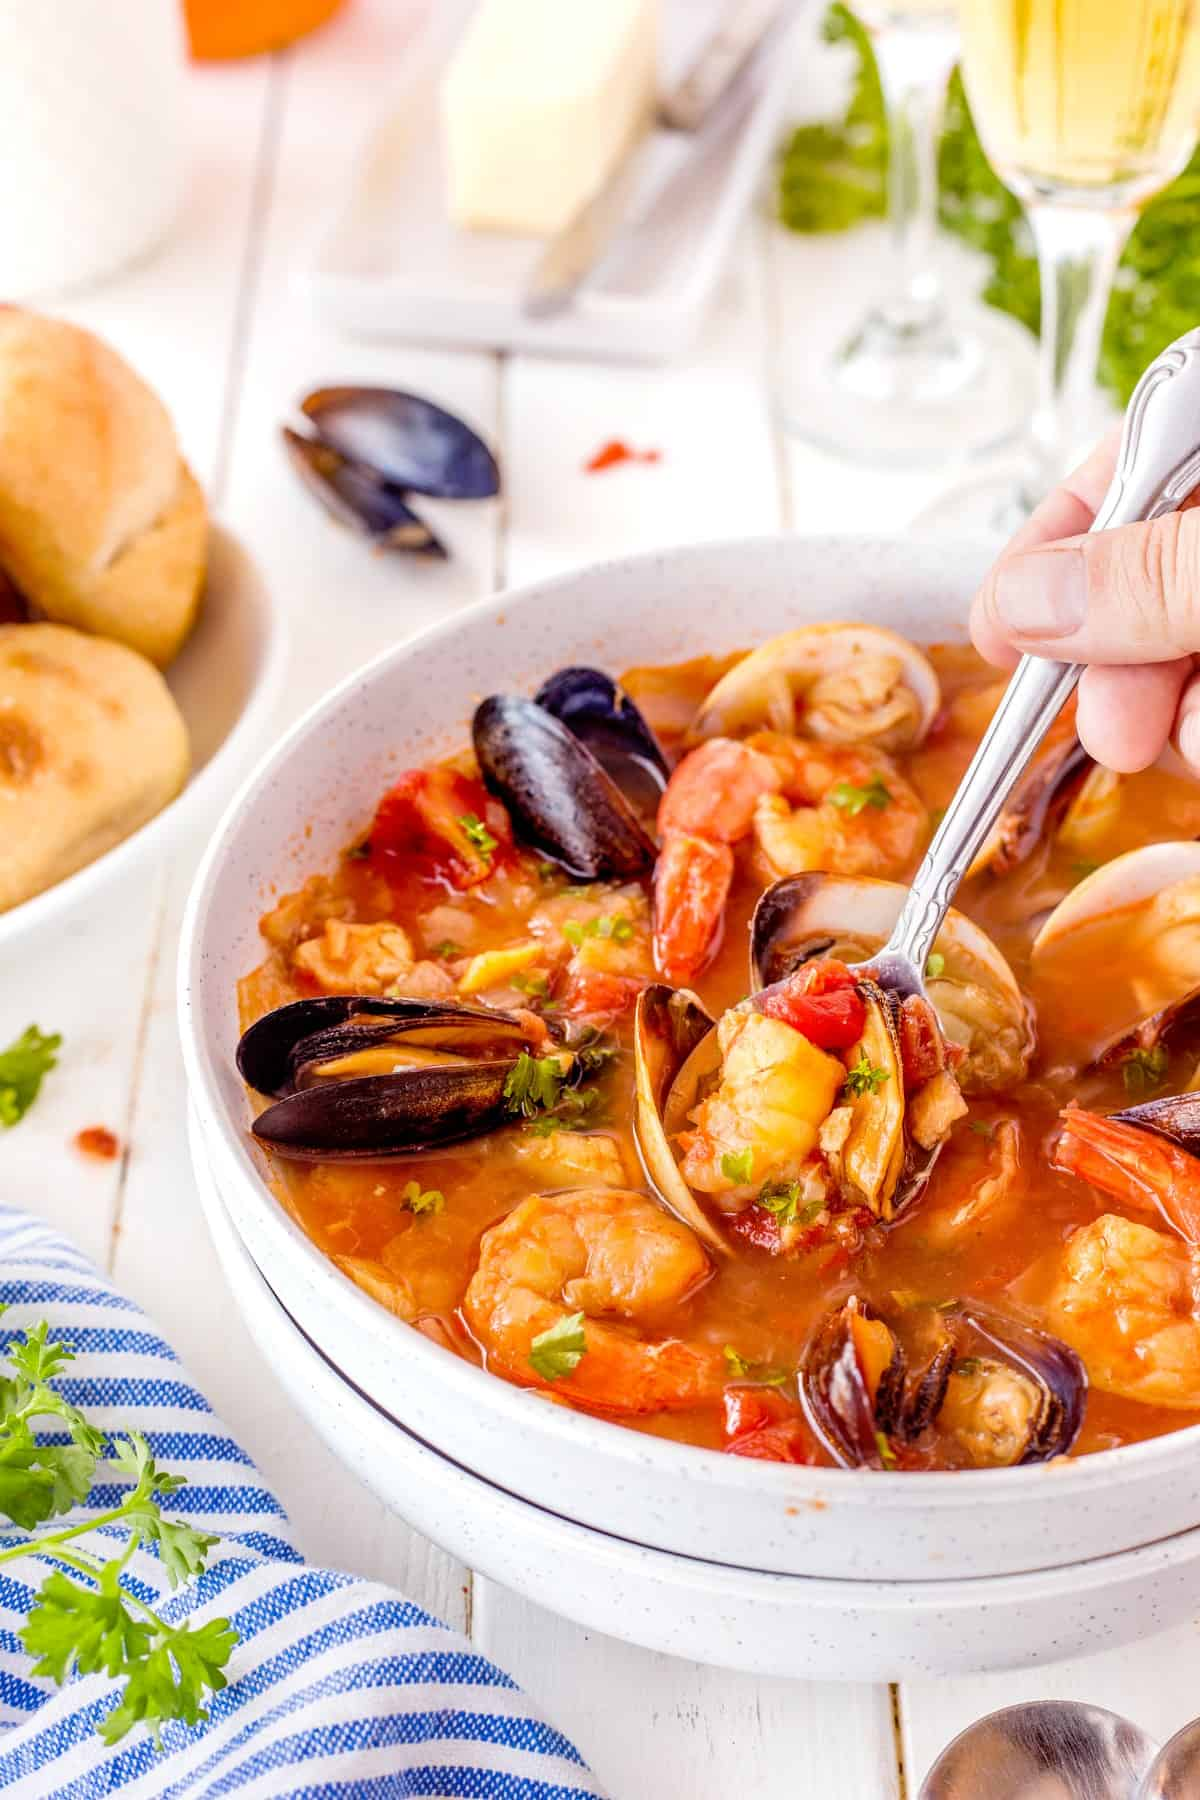 Diving in with a spoon to Fisherman's Stew.